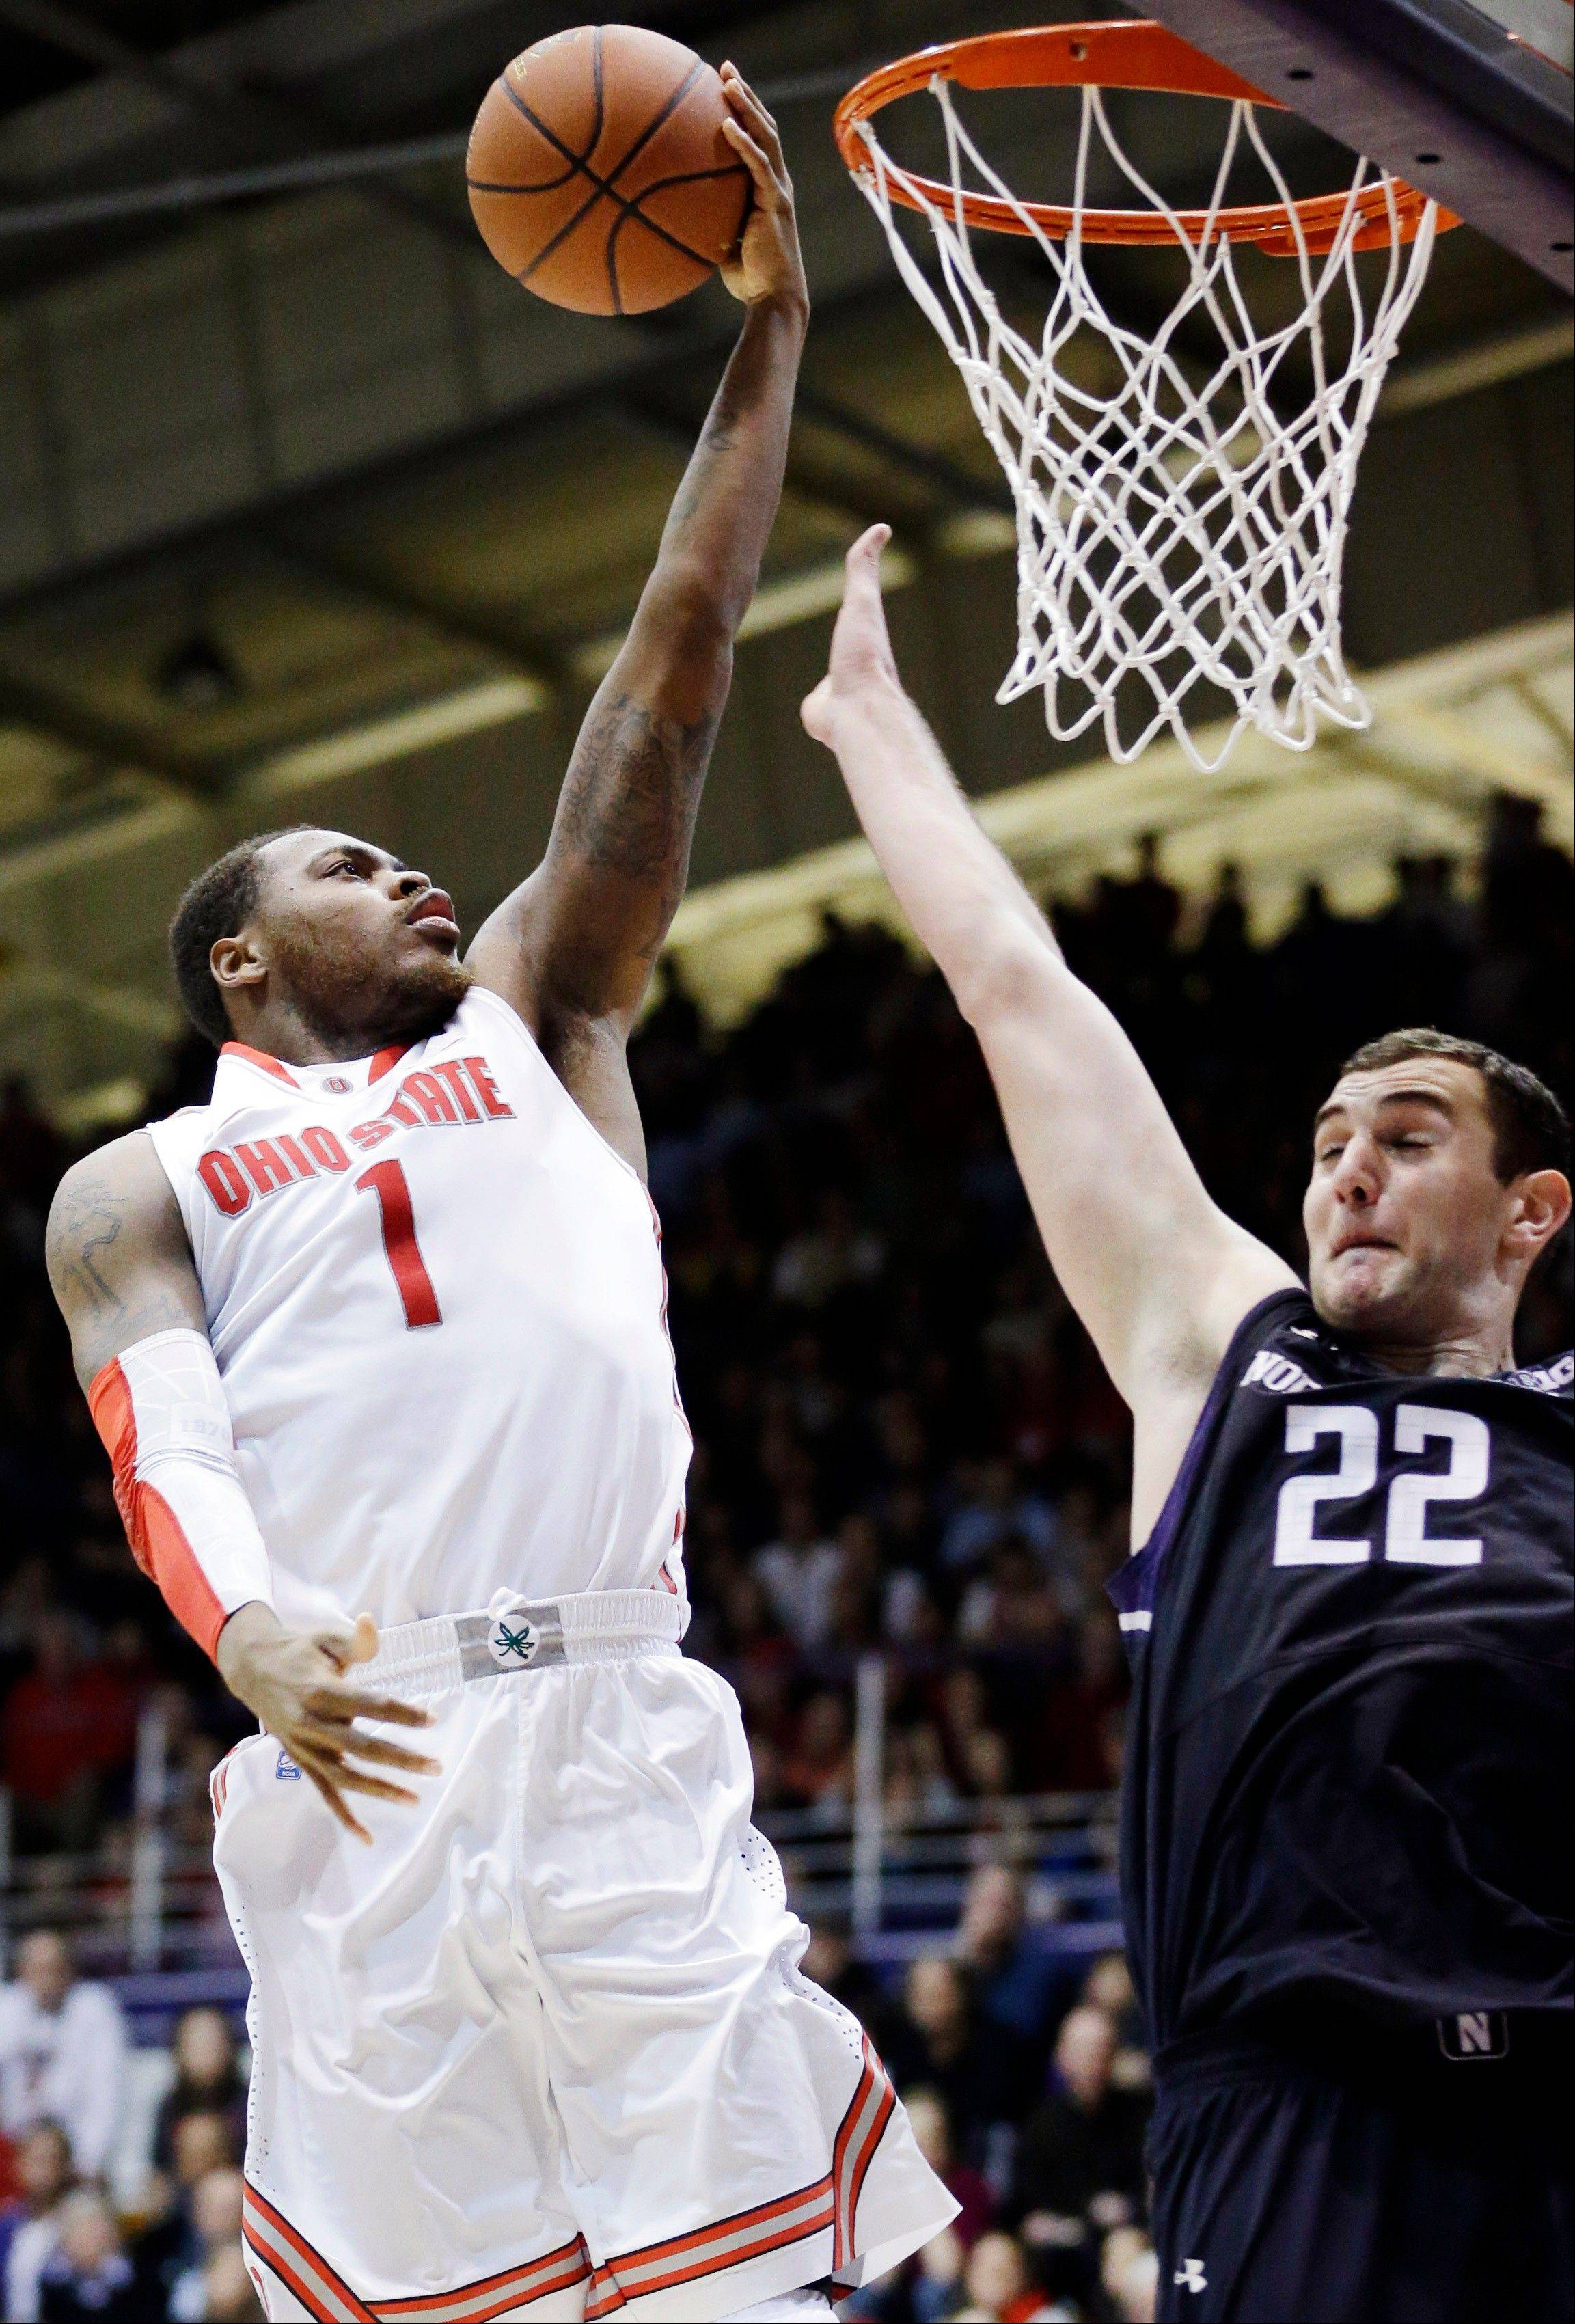 Ohio State forward DeShaun Thomas (1) drives to the basket against Northwestern center Alex Olah during the second half of an NCAA college basketball game in Evanston, Ill., Thursday, Feb. 28, 2013. Ohio State won 63-53.